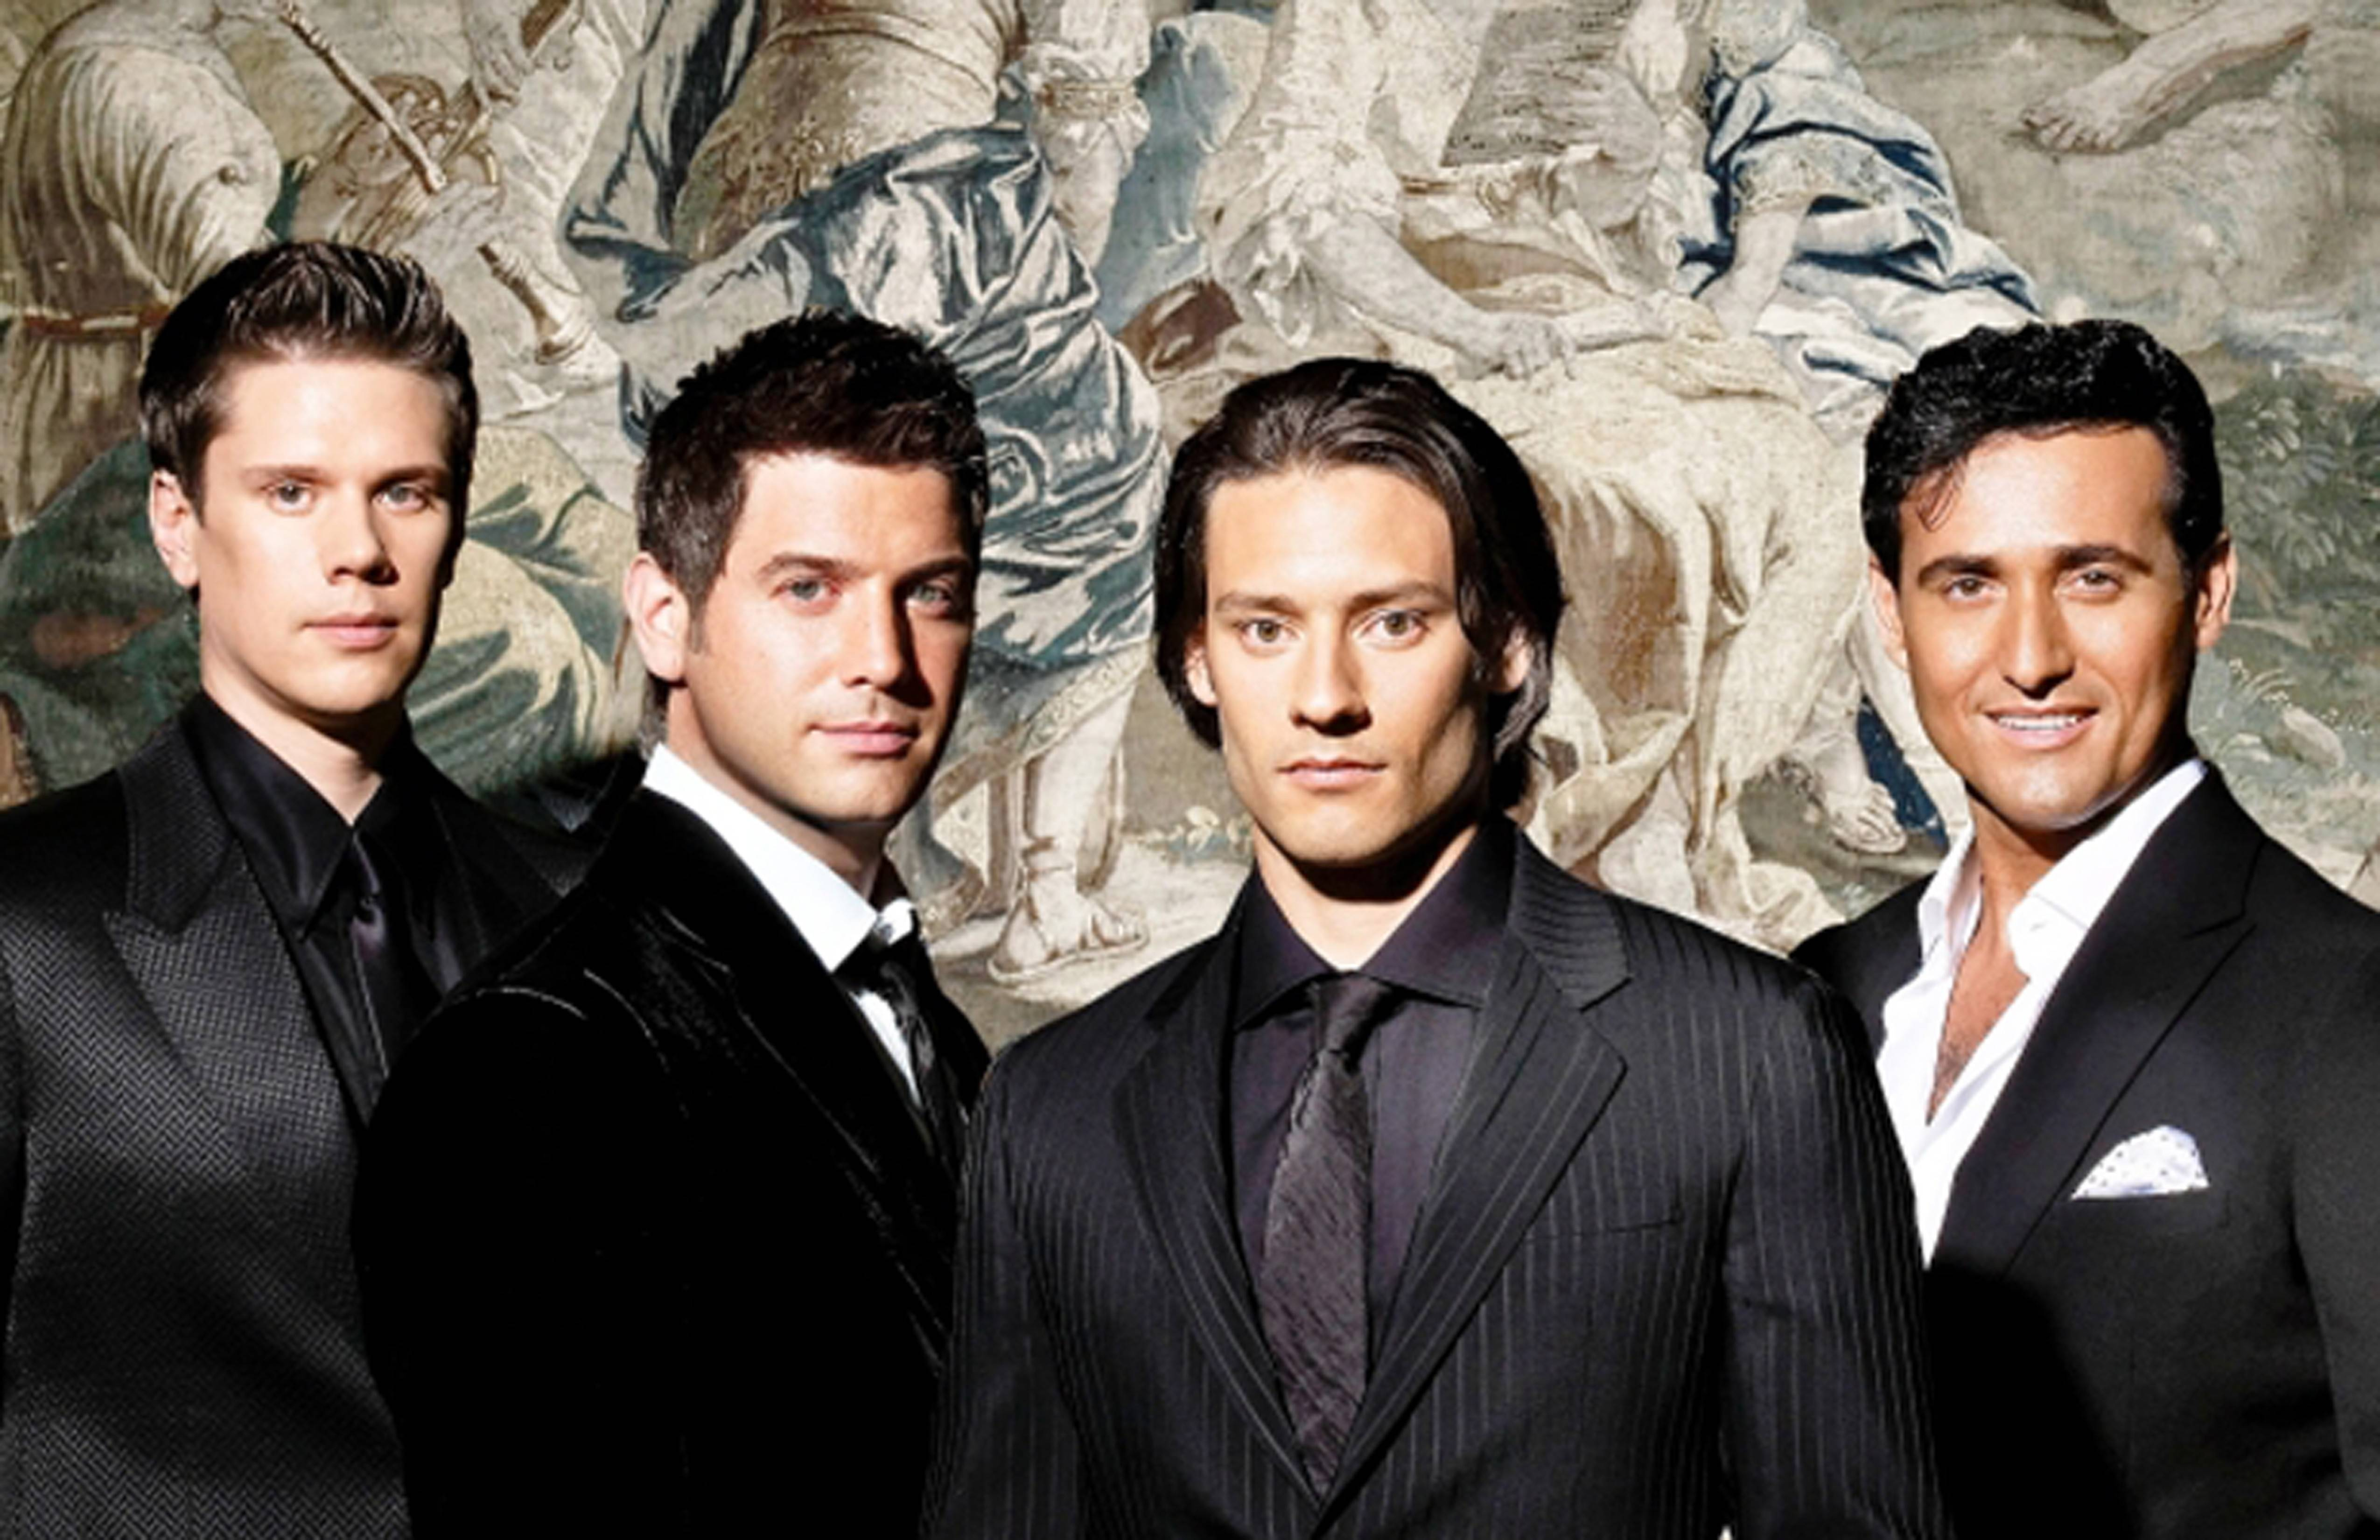 Il Divo performs at the Rosemont Theatre at 8 p.m. Saturday, Oct. 22.